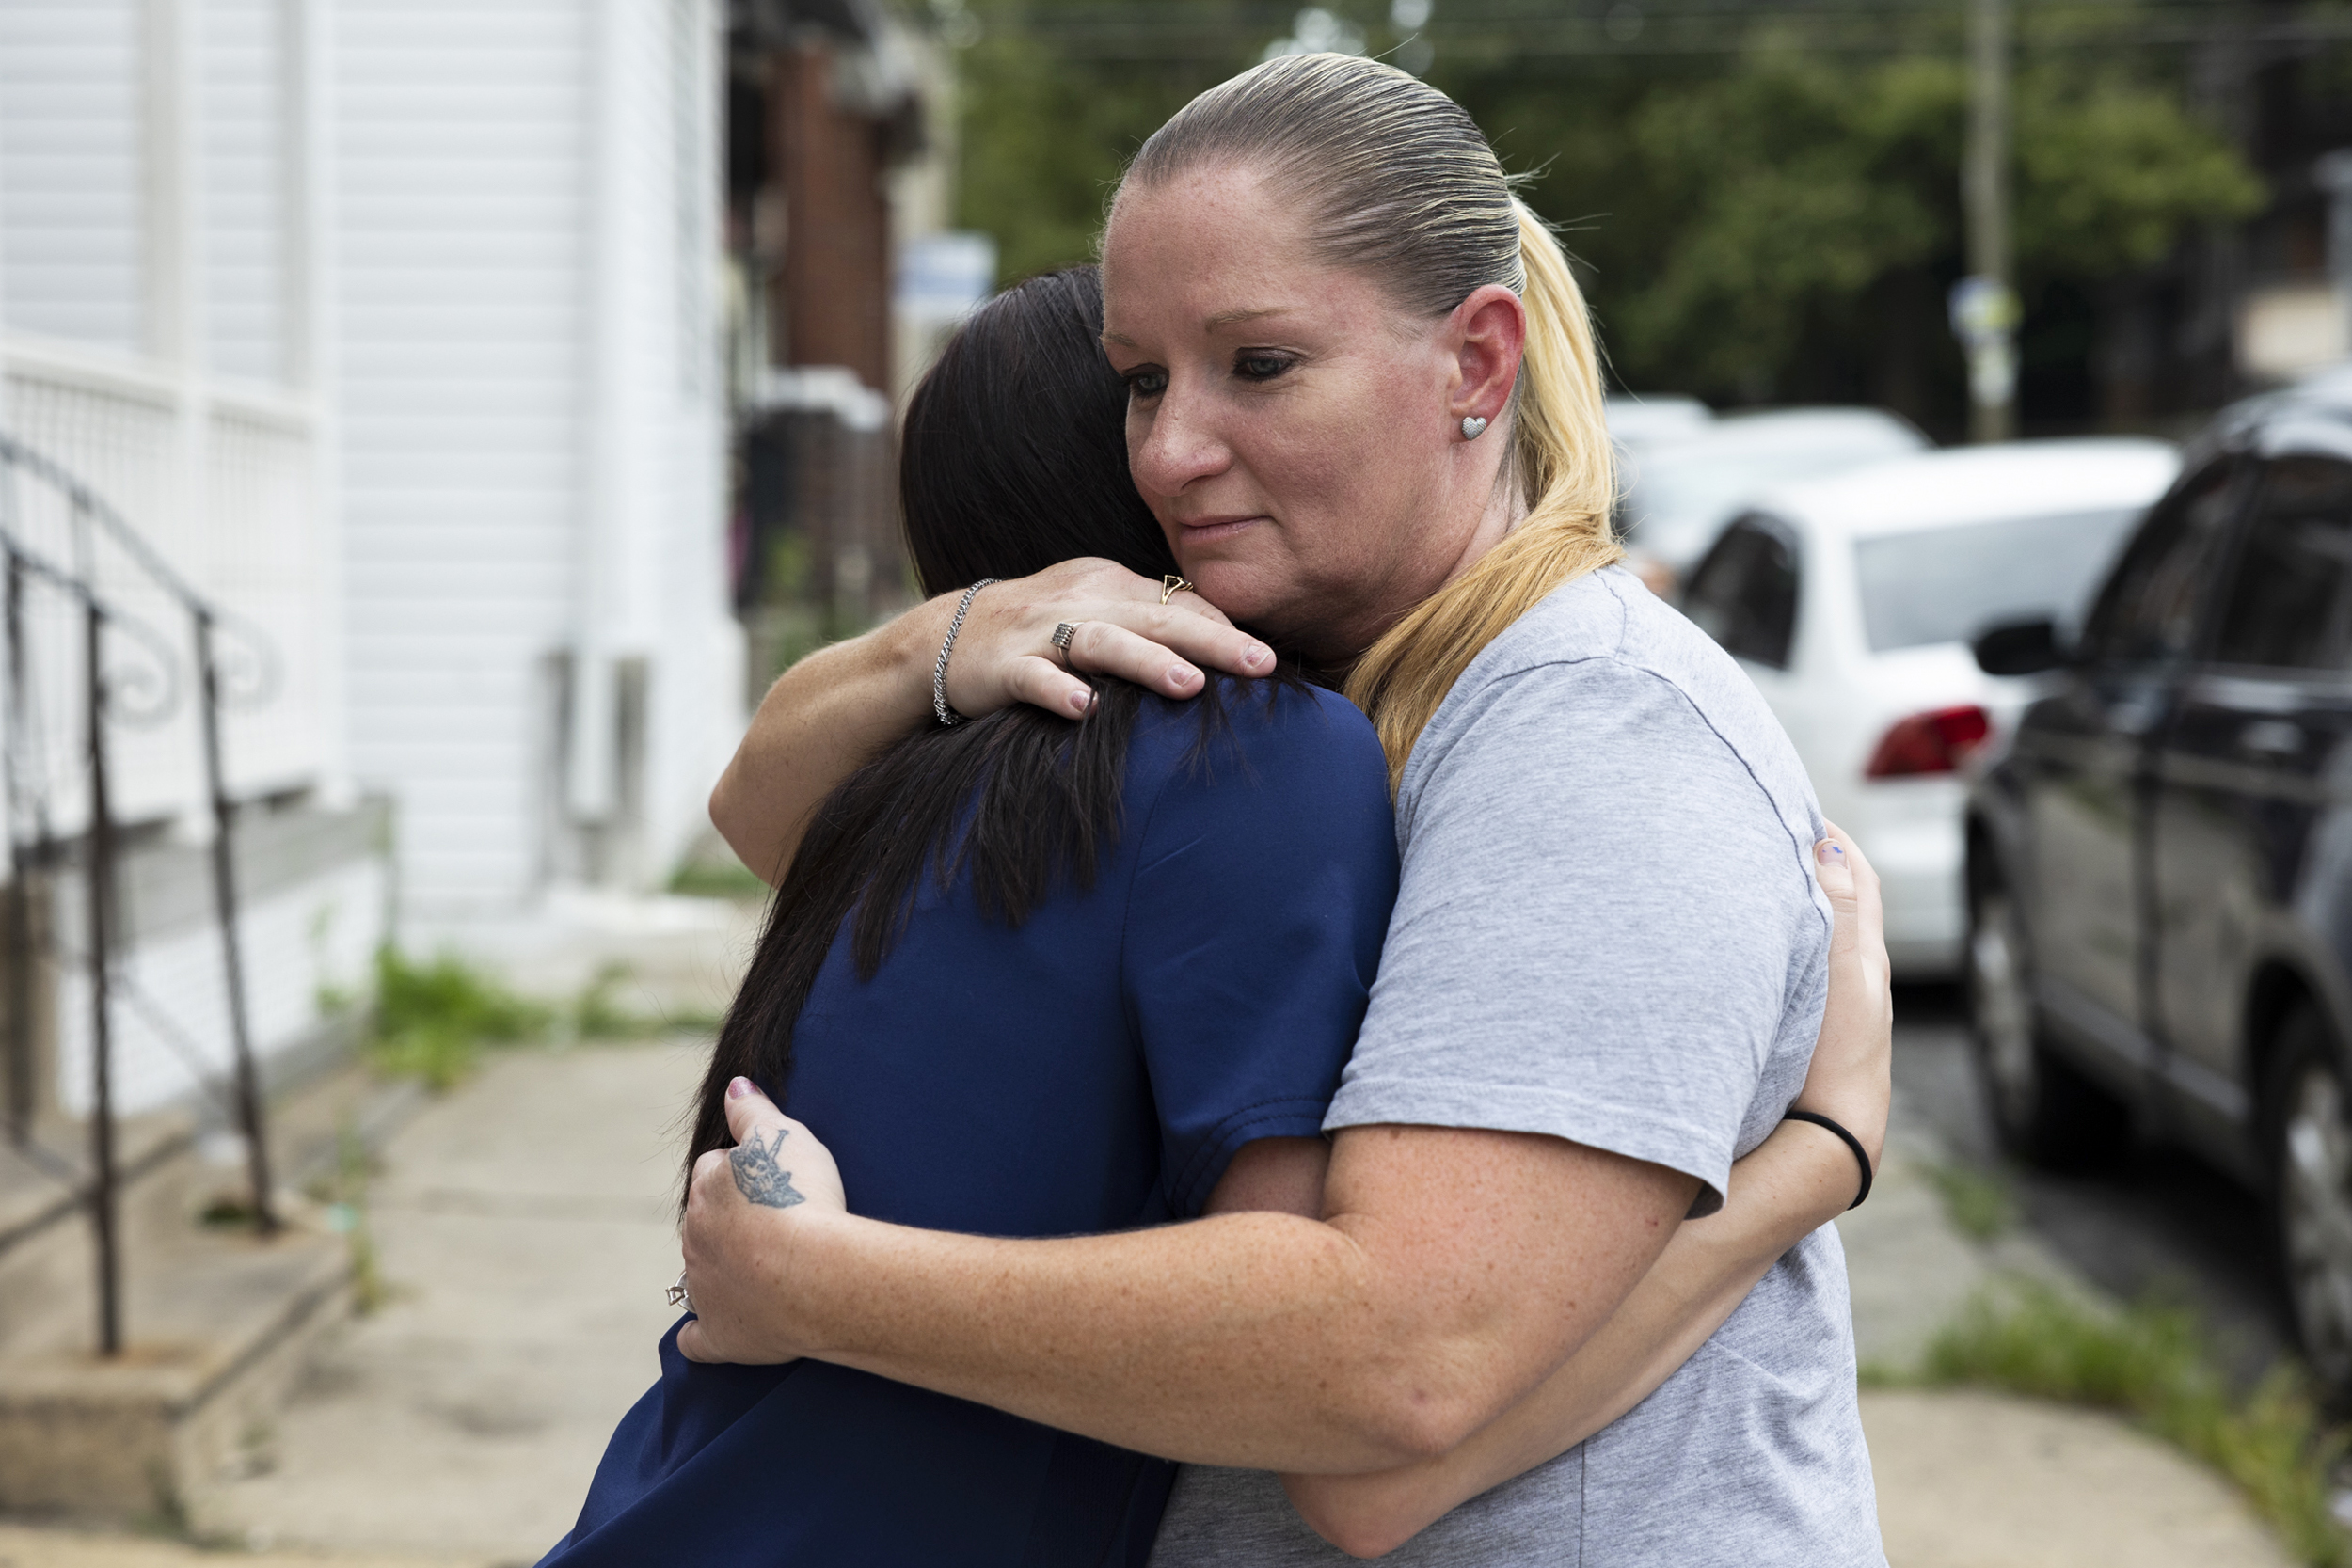 She wanted her kids back. A family court judge wouldn't let her talk.